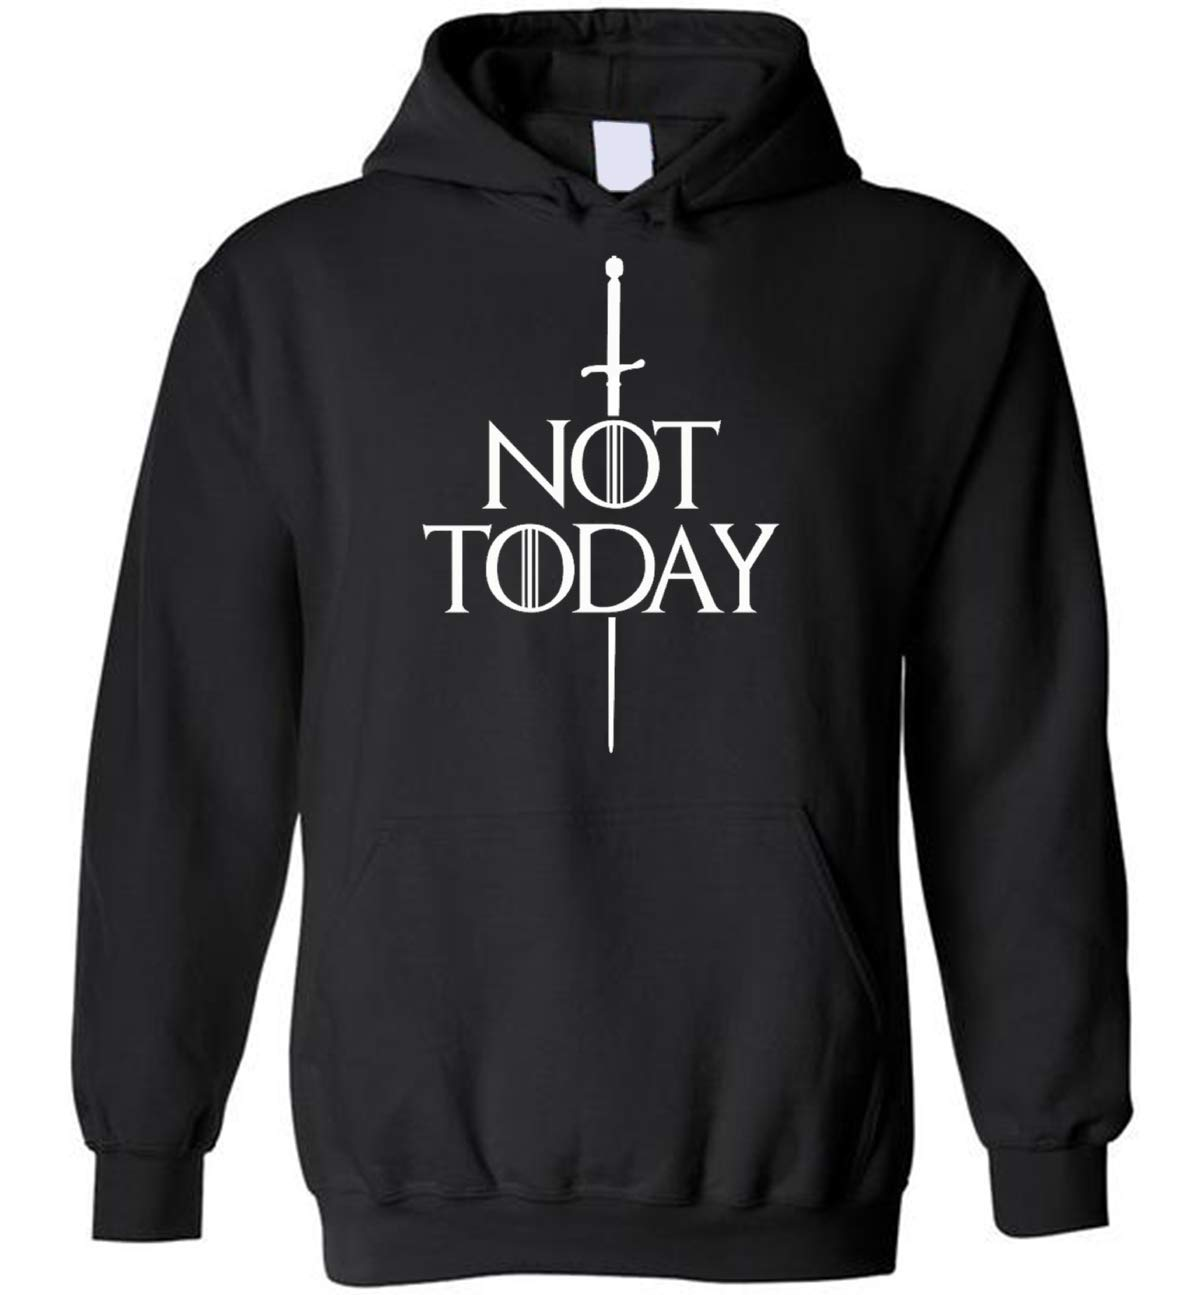 Not today Arya Said Fan gift Hoodies Sweatshirt Not Today Shirt What Do We Say To The God Of Death